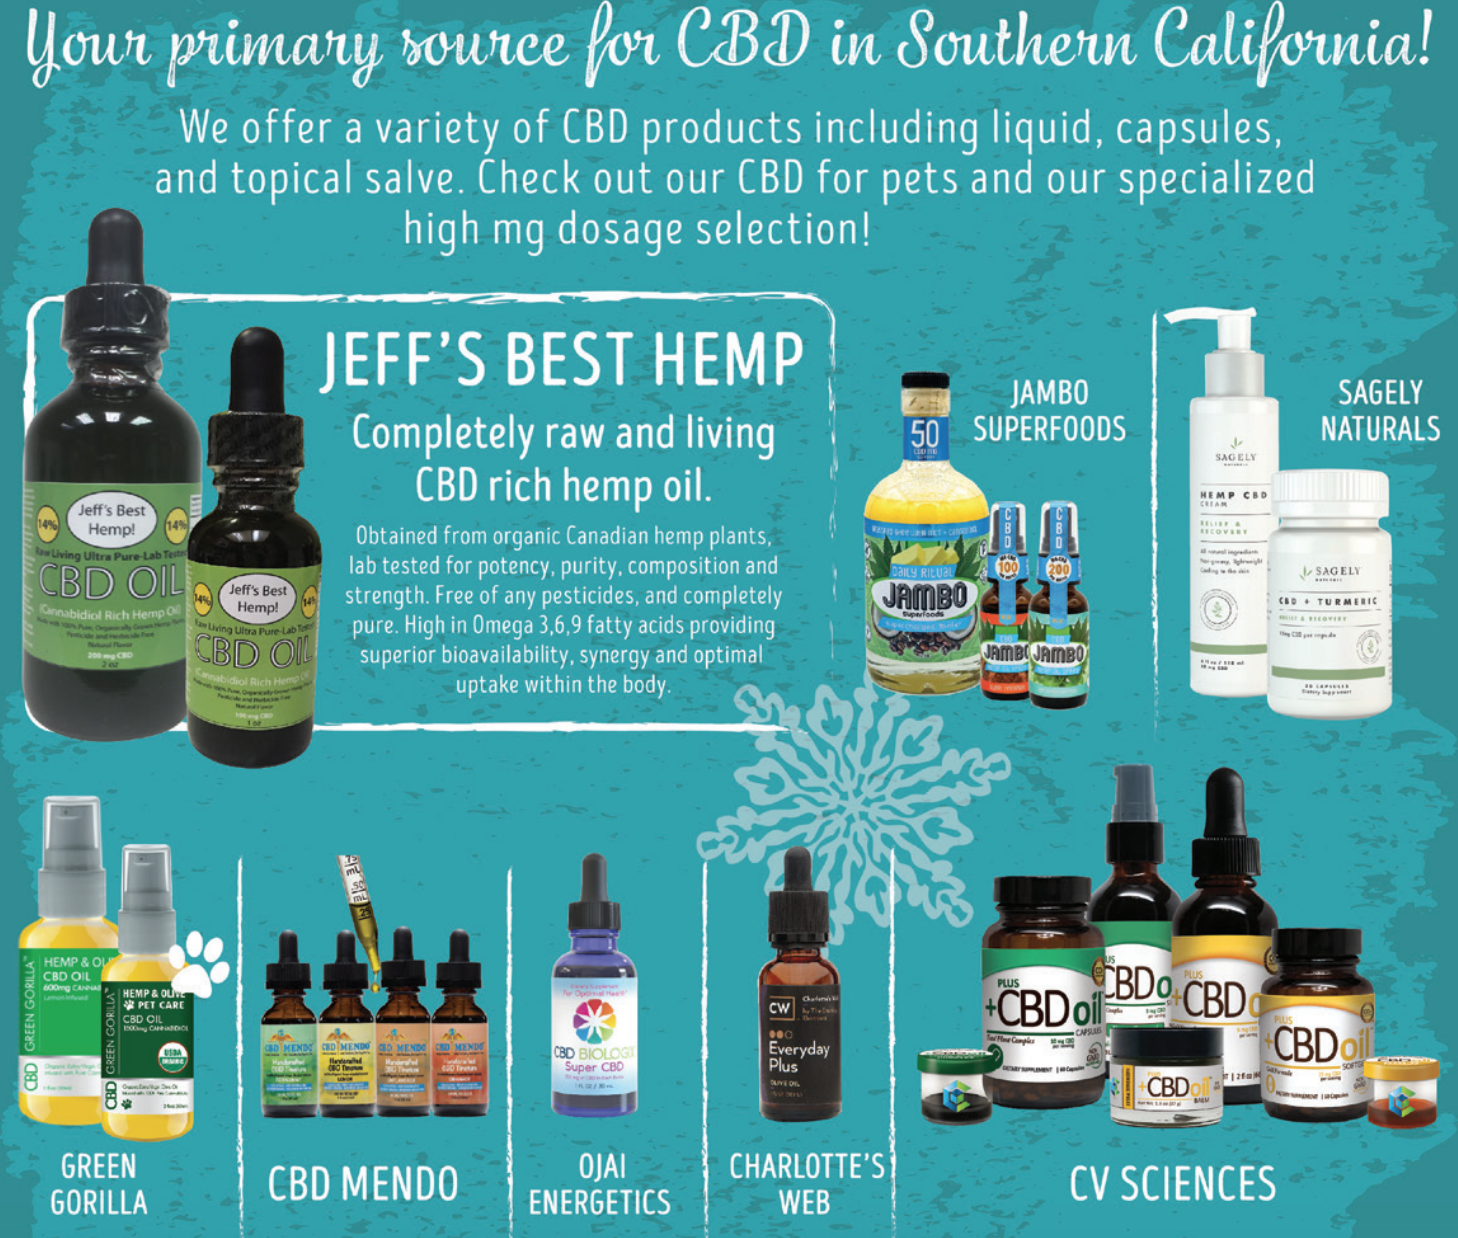 CBD+Oil, Hemp+Oil, Wha+ is+CBD+Oil, Uses+of+CBD+Oil,